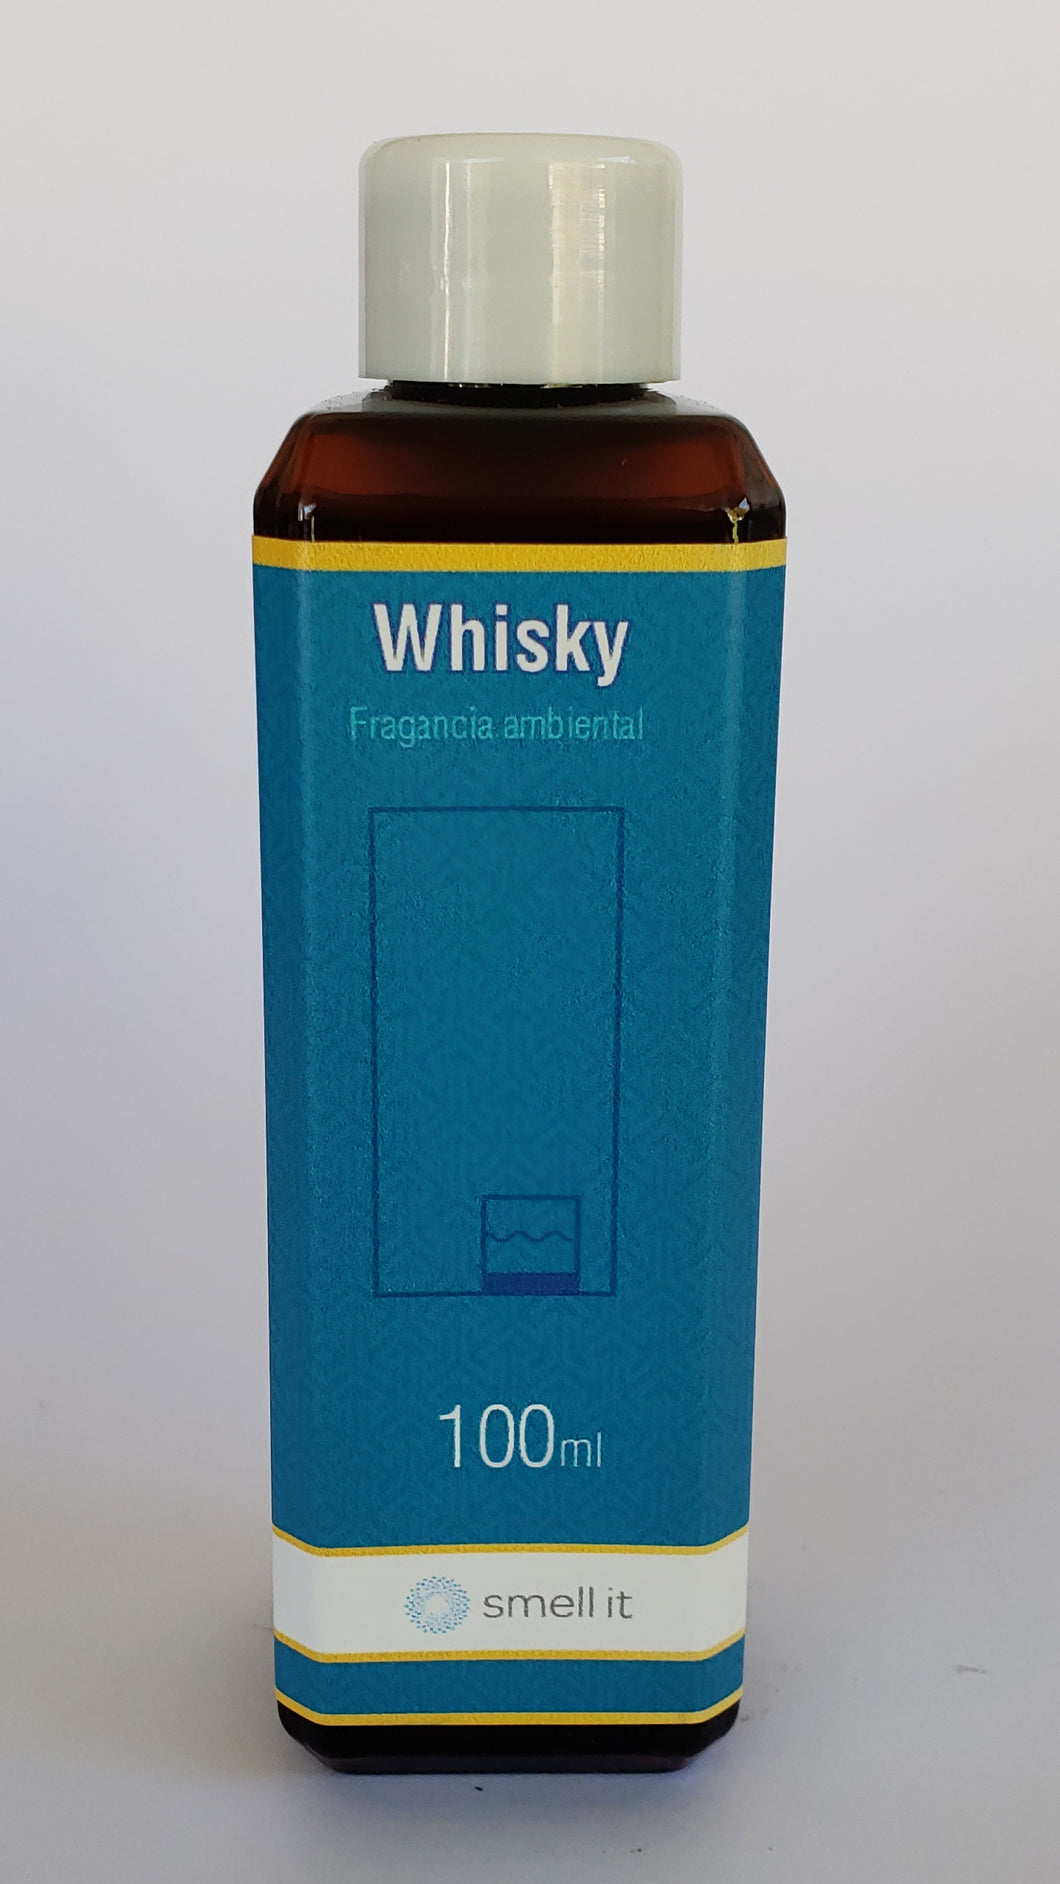 Fragancia Ambiental - Whisky